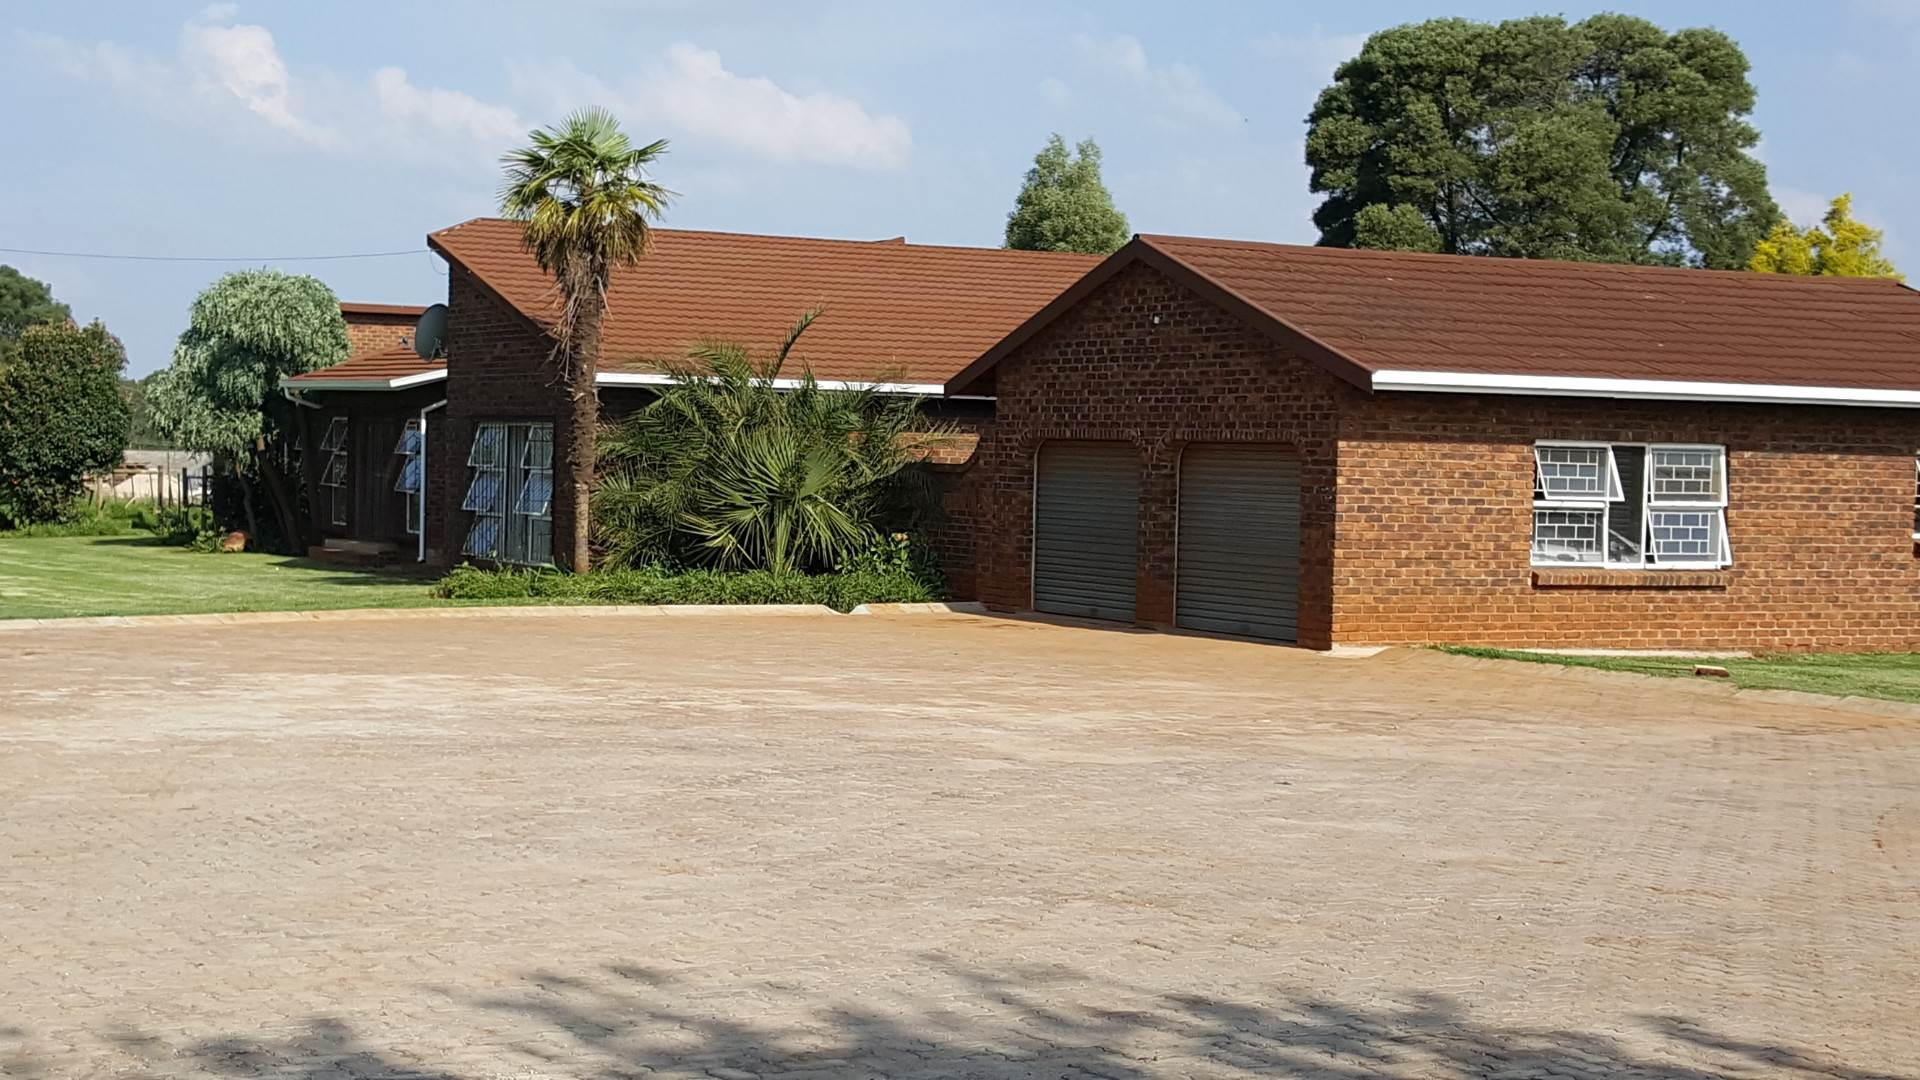 5 BedroomHouse For Sale In Union Forest Plantation